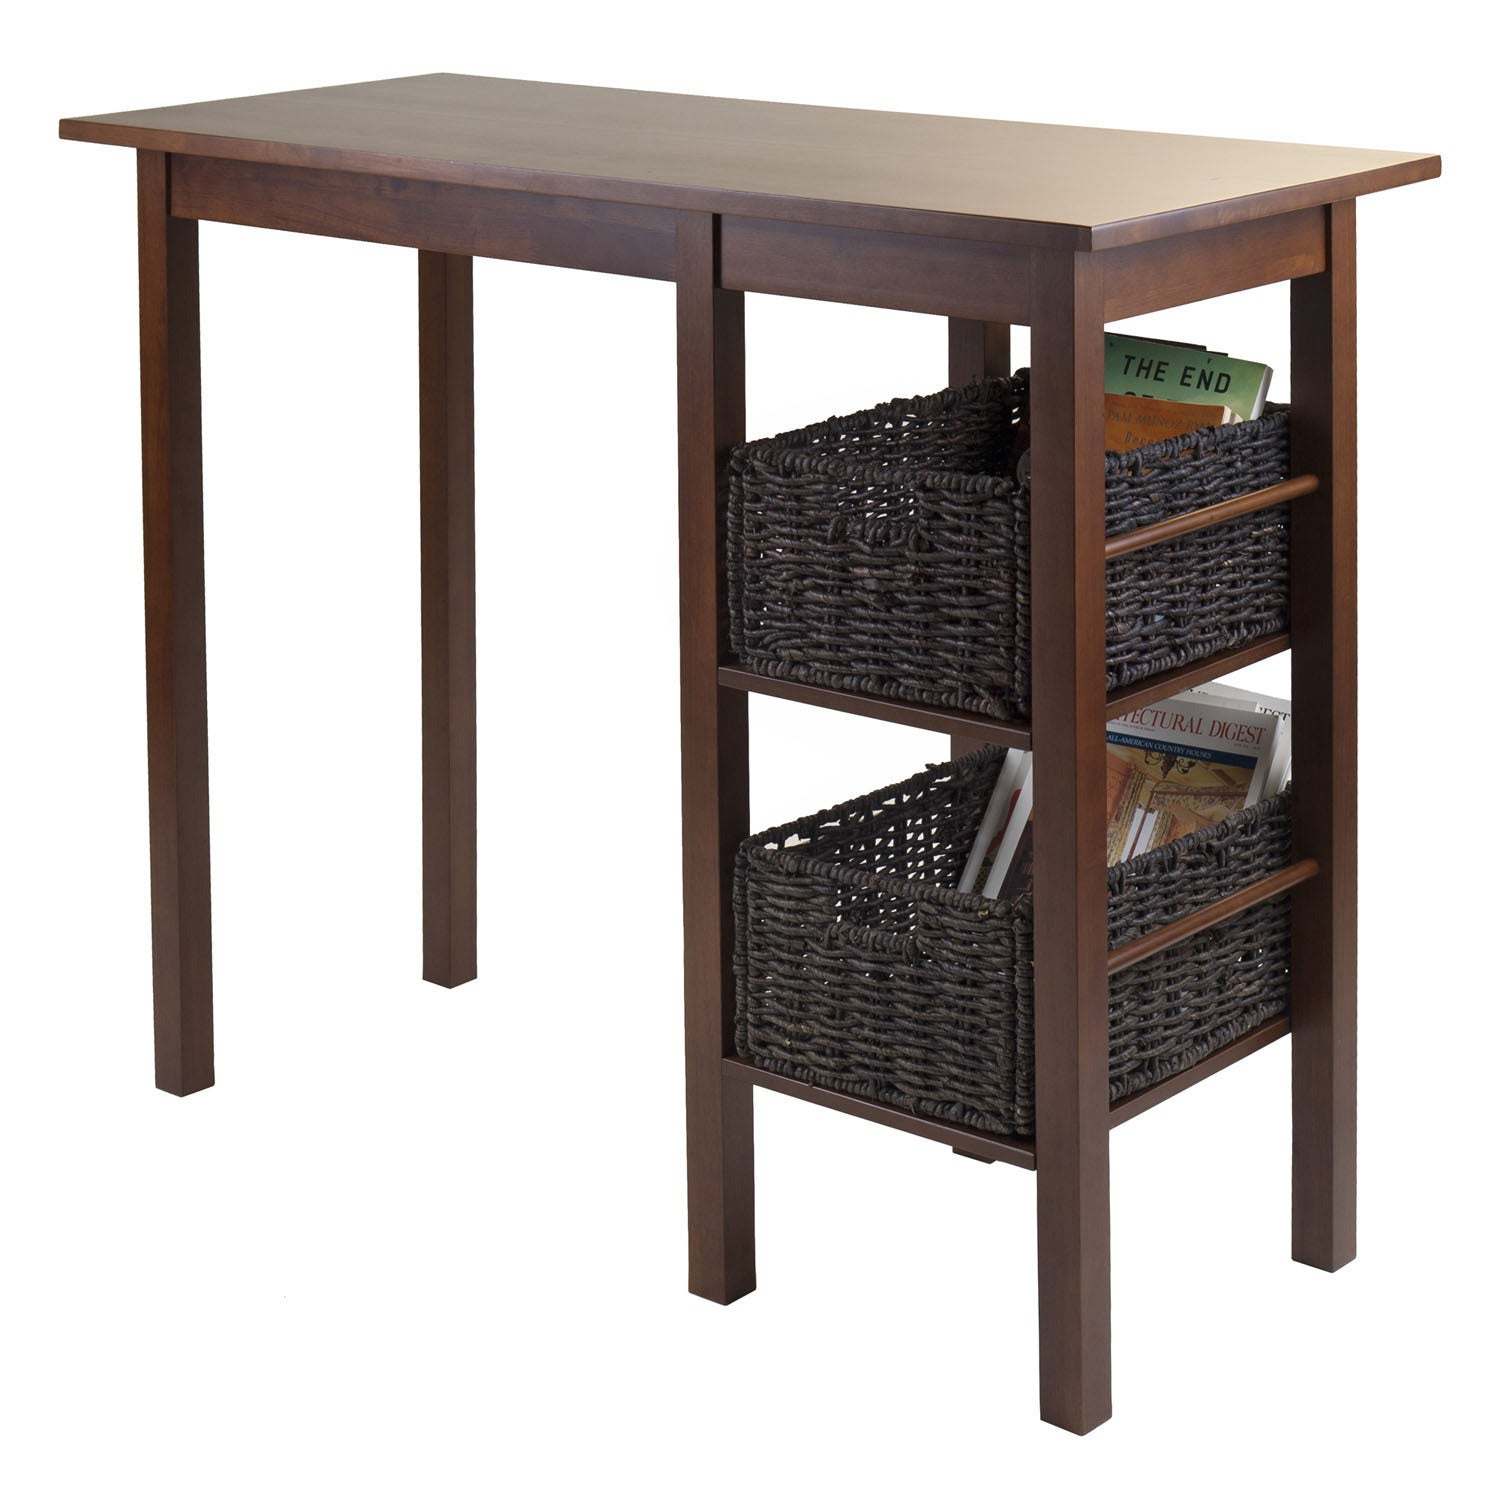 Egan 3 Pc Breakfast Table With 2 Baskets Set Free Shipping Today 12021201